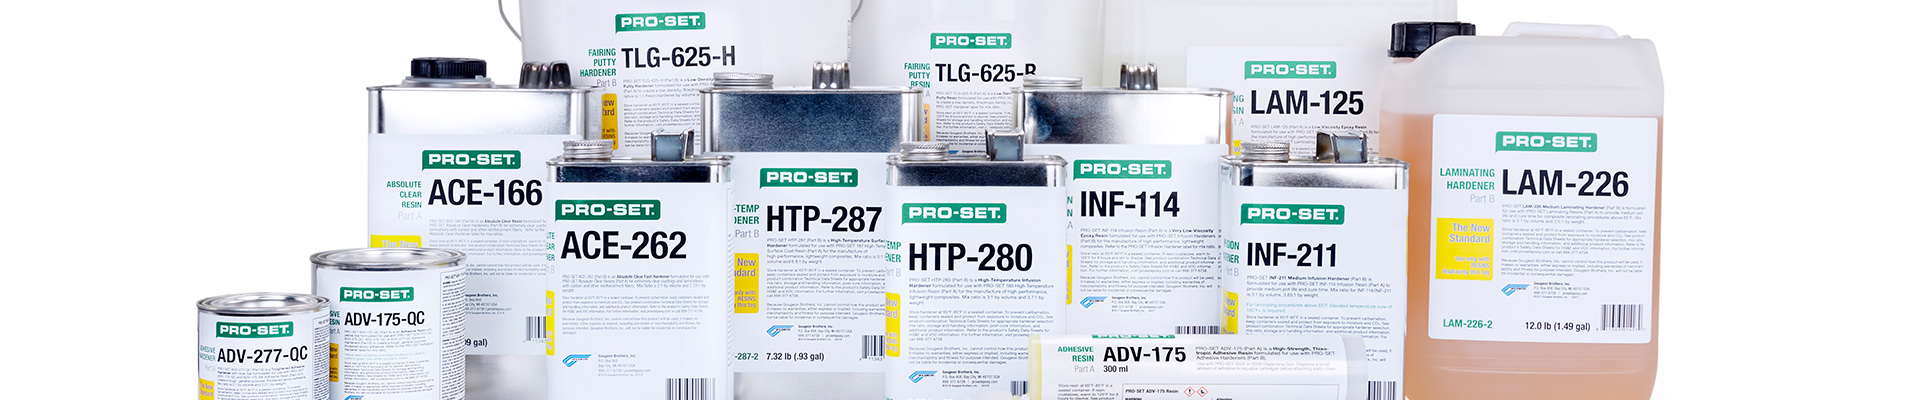 New Product Line - PRO-SET Epoxies and Adhesives